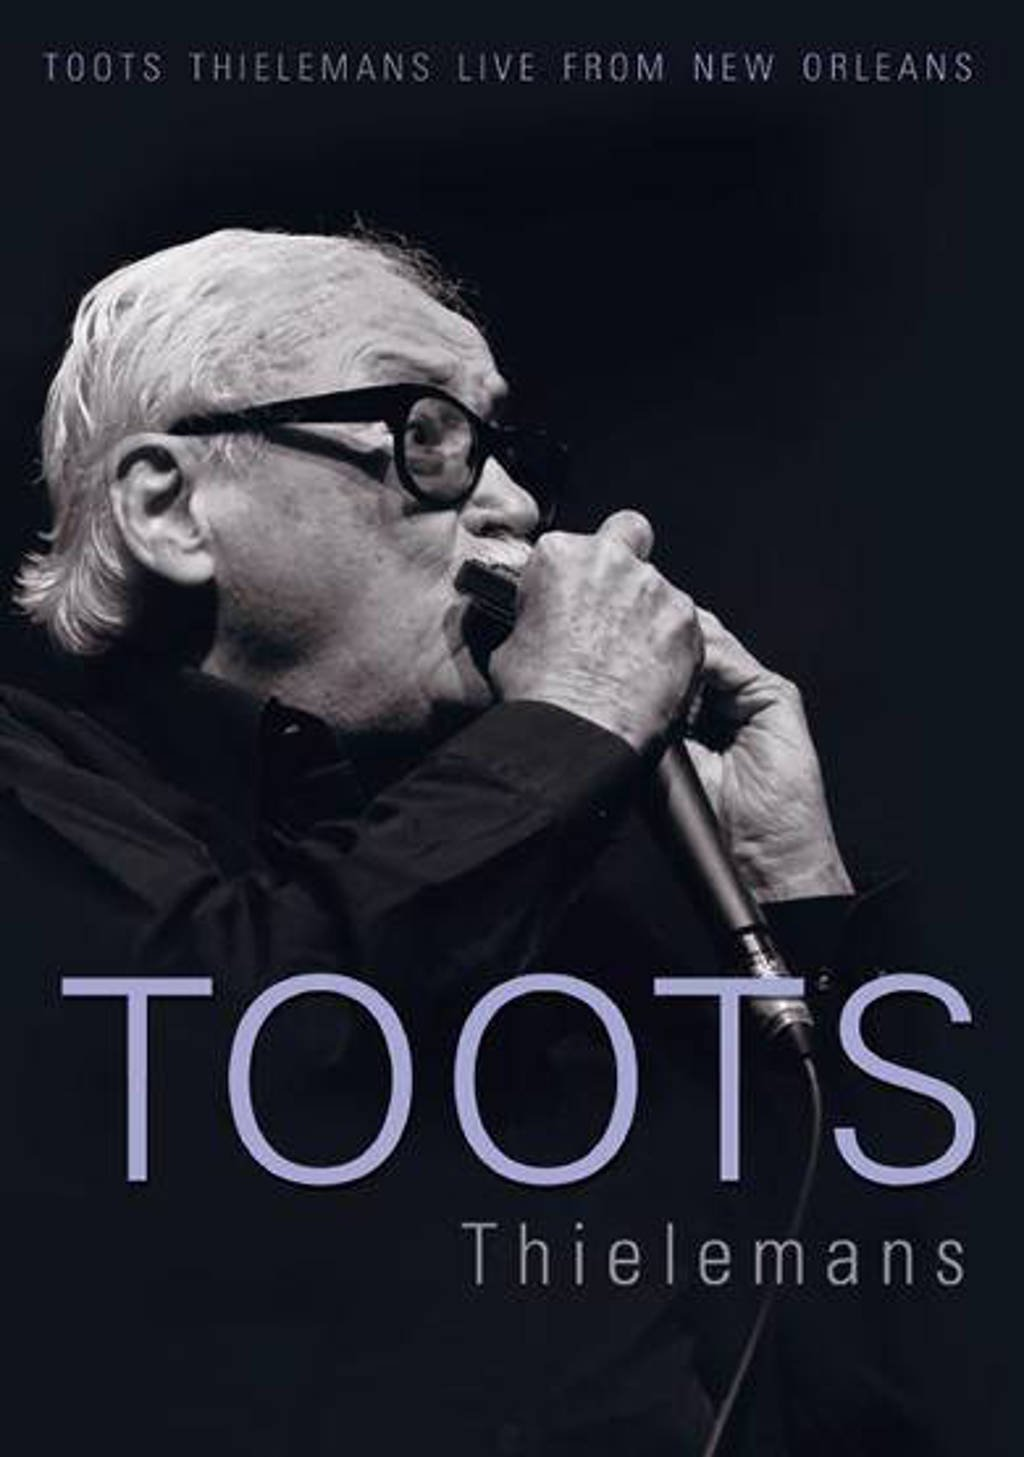 Live from New Orleans - Toots Thielemans (DVD)